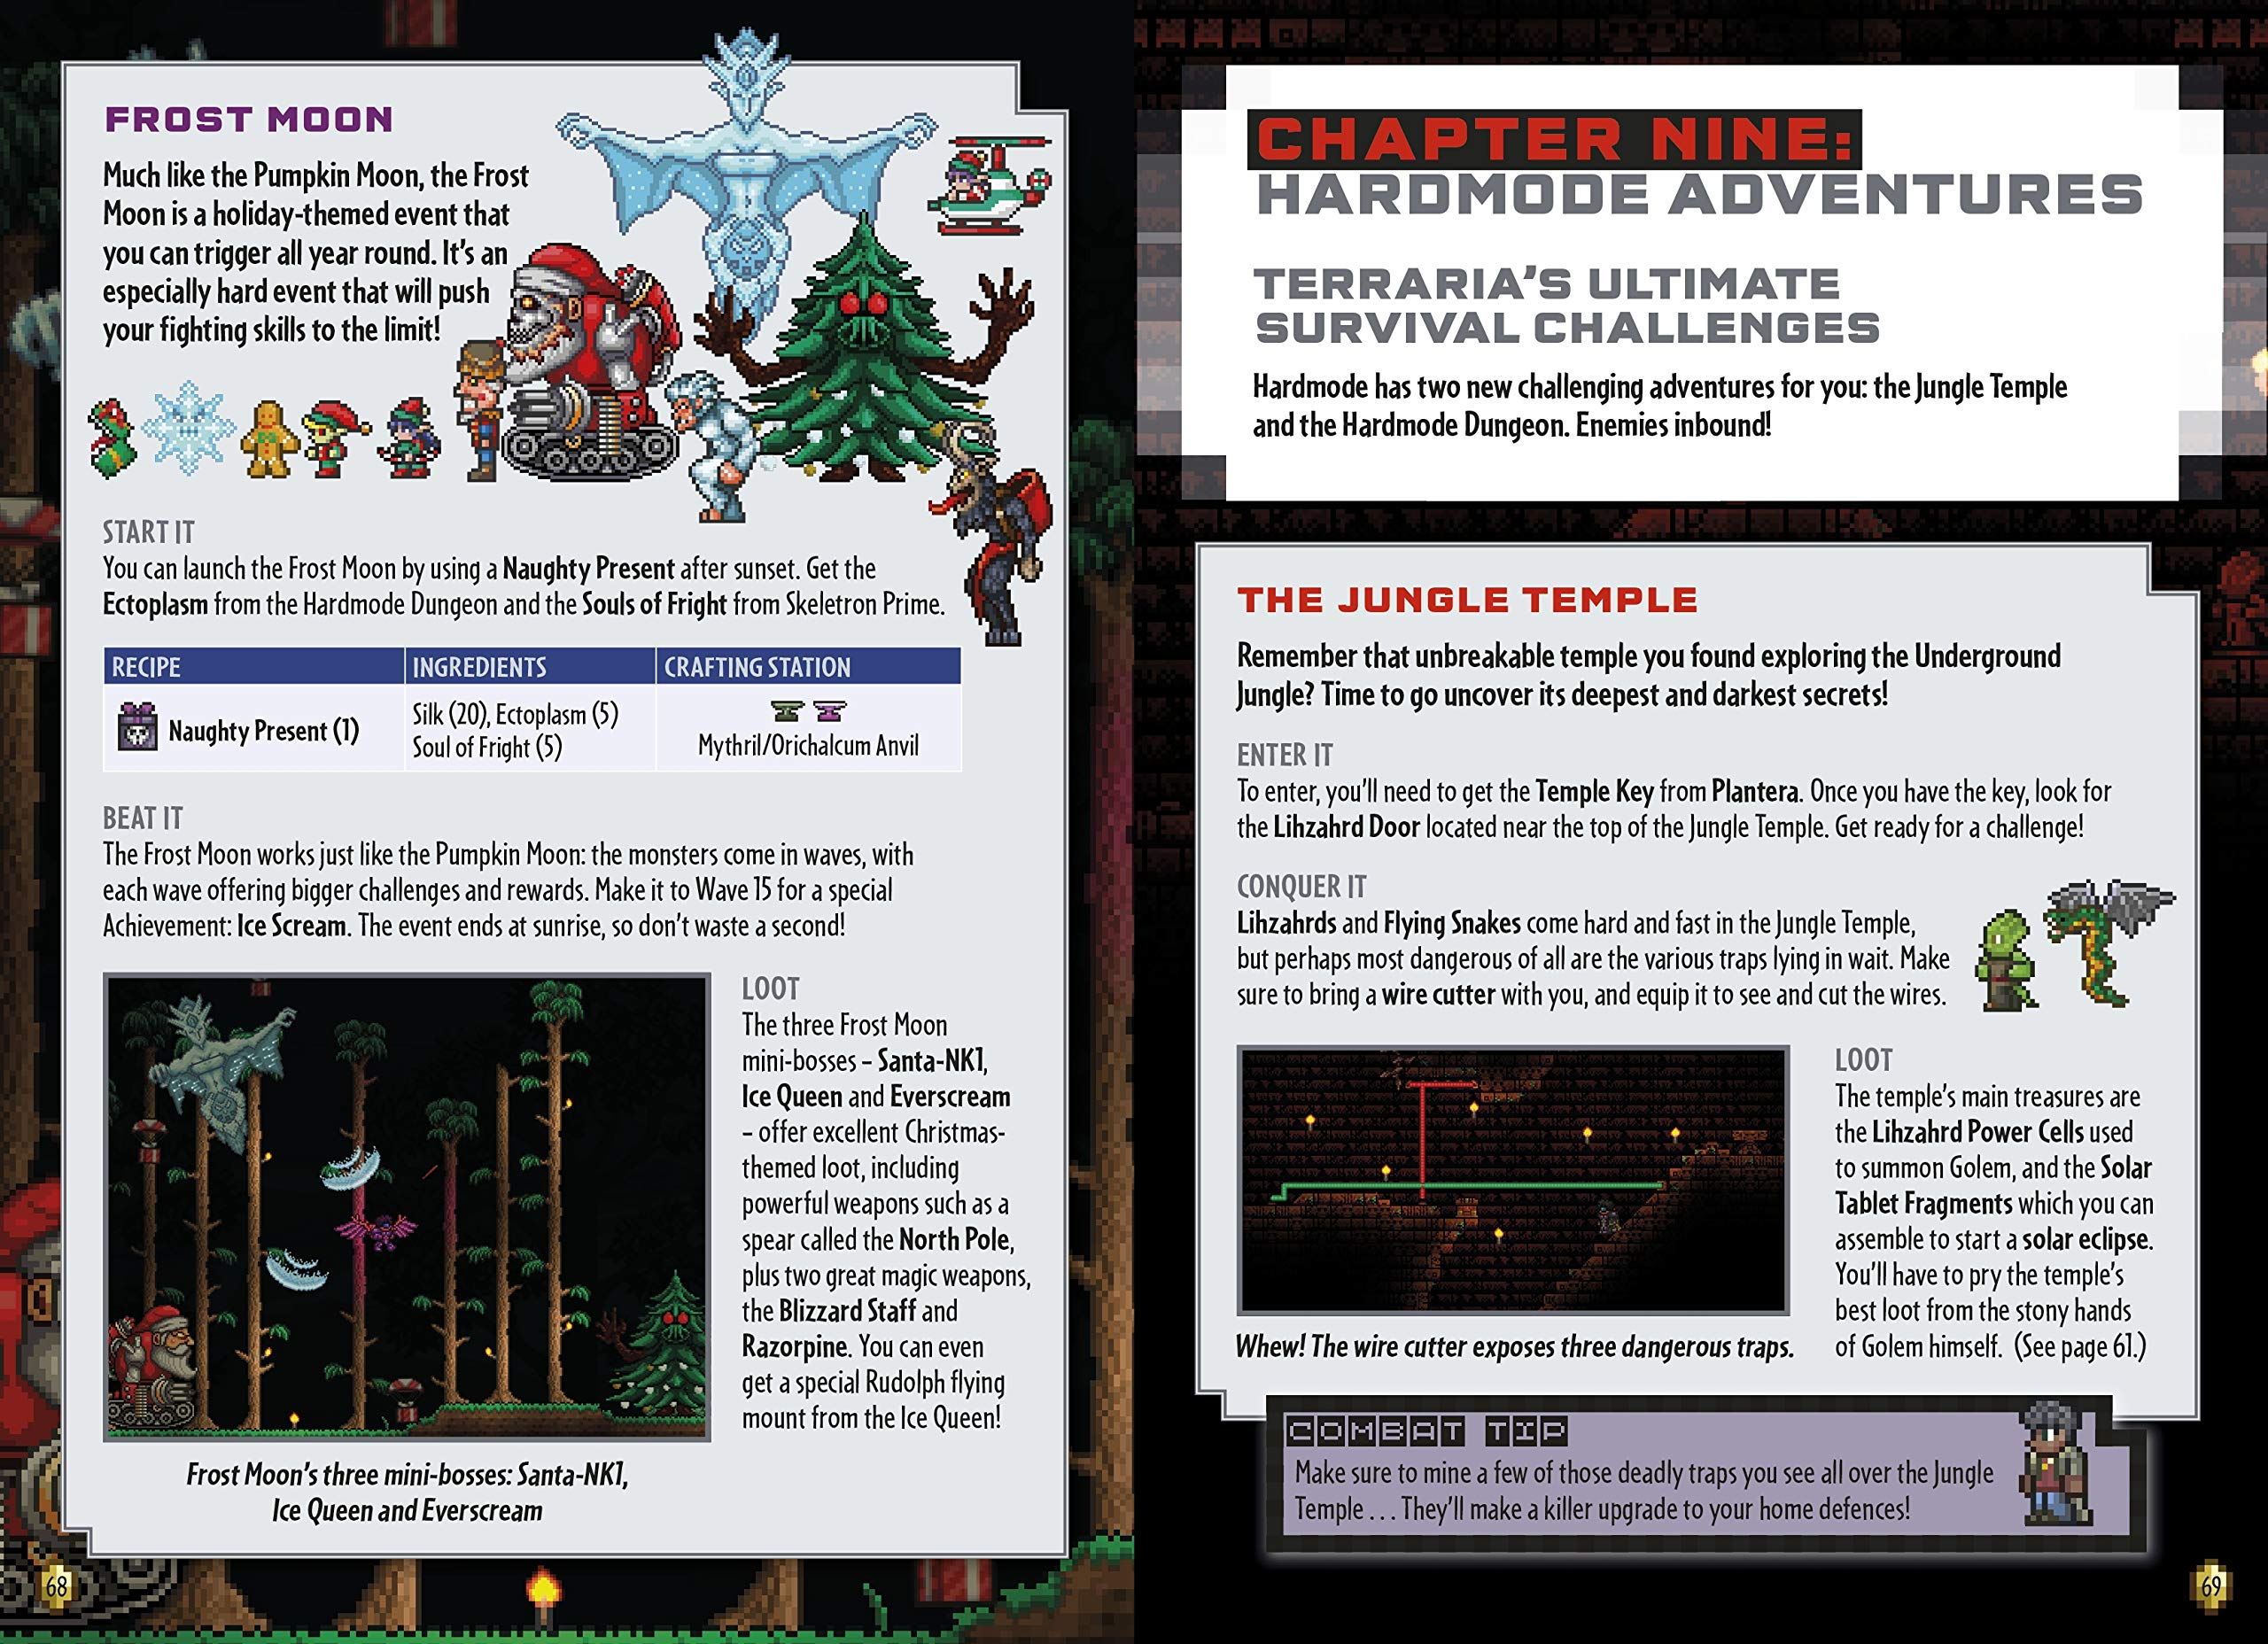 Terraria Hardmode Survival Handbook Na 9780141369921 Amazon Com Books Brought by motivation of the solar eclipse of today. terraria hardmode survival handbook